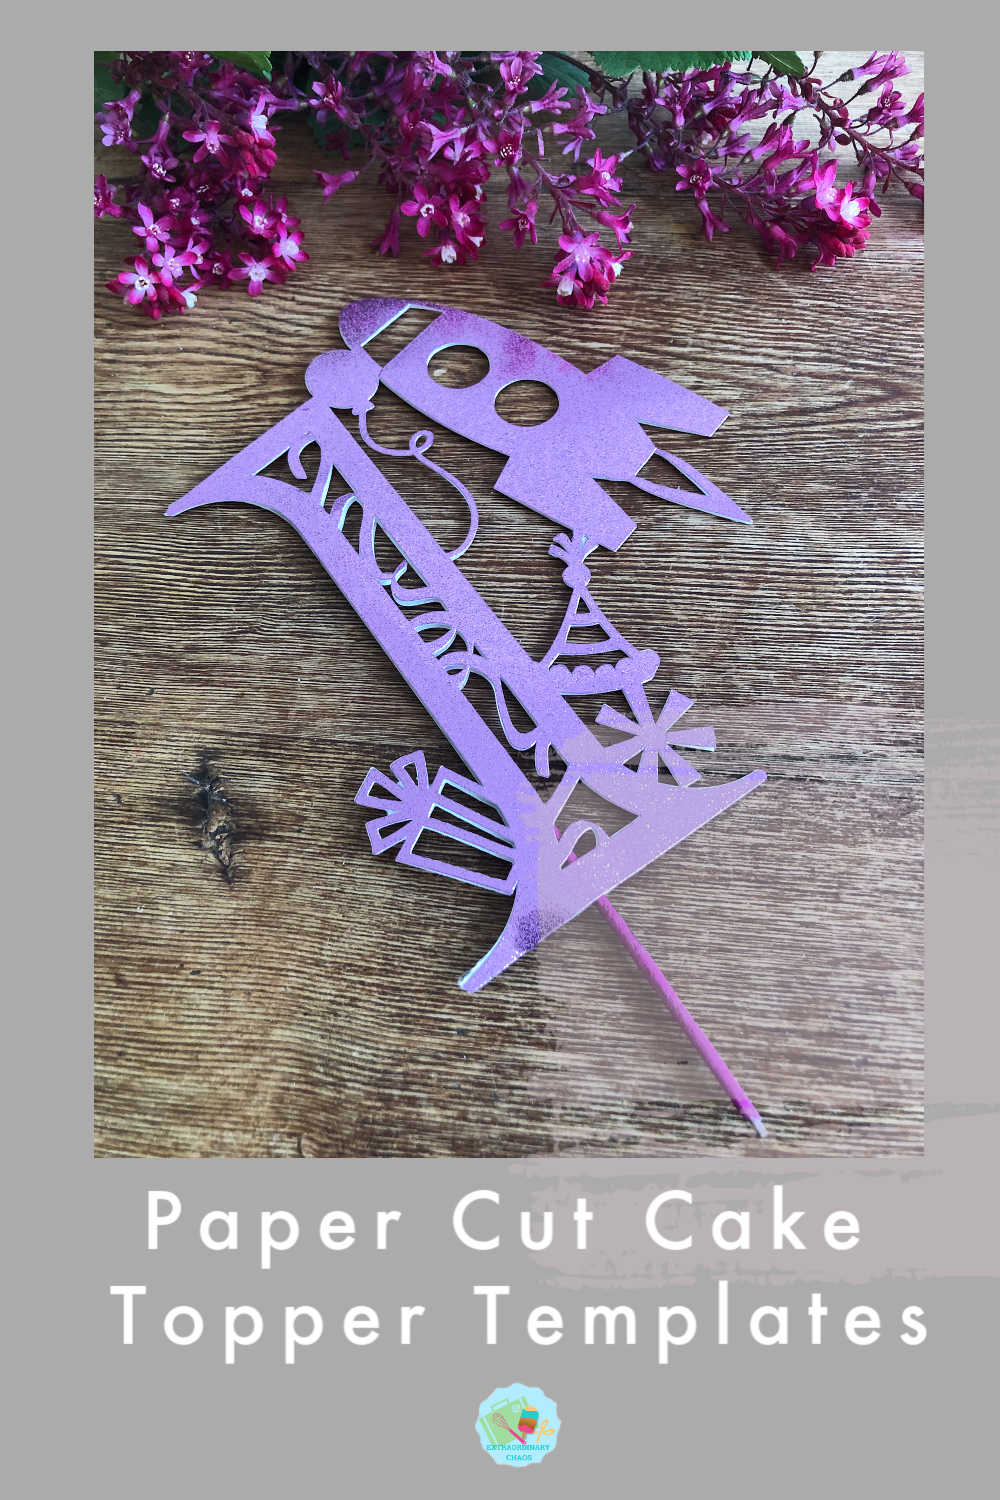 How to make paper cut cake toppers and free number templates